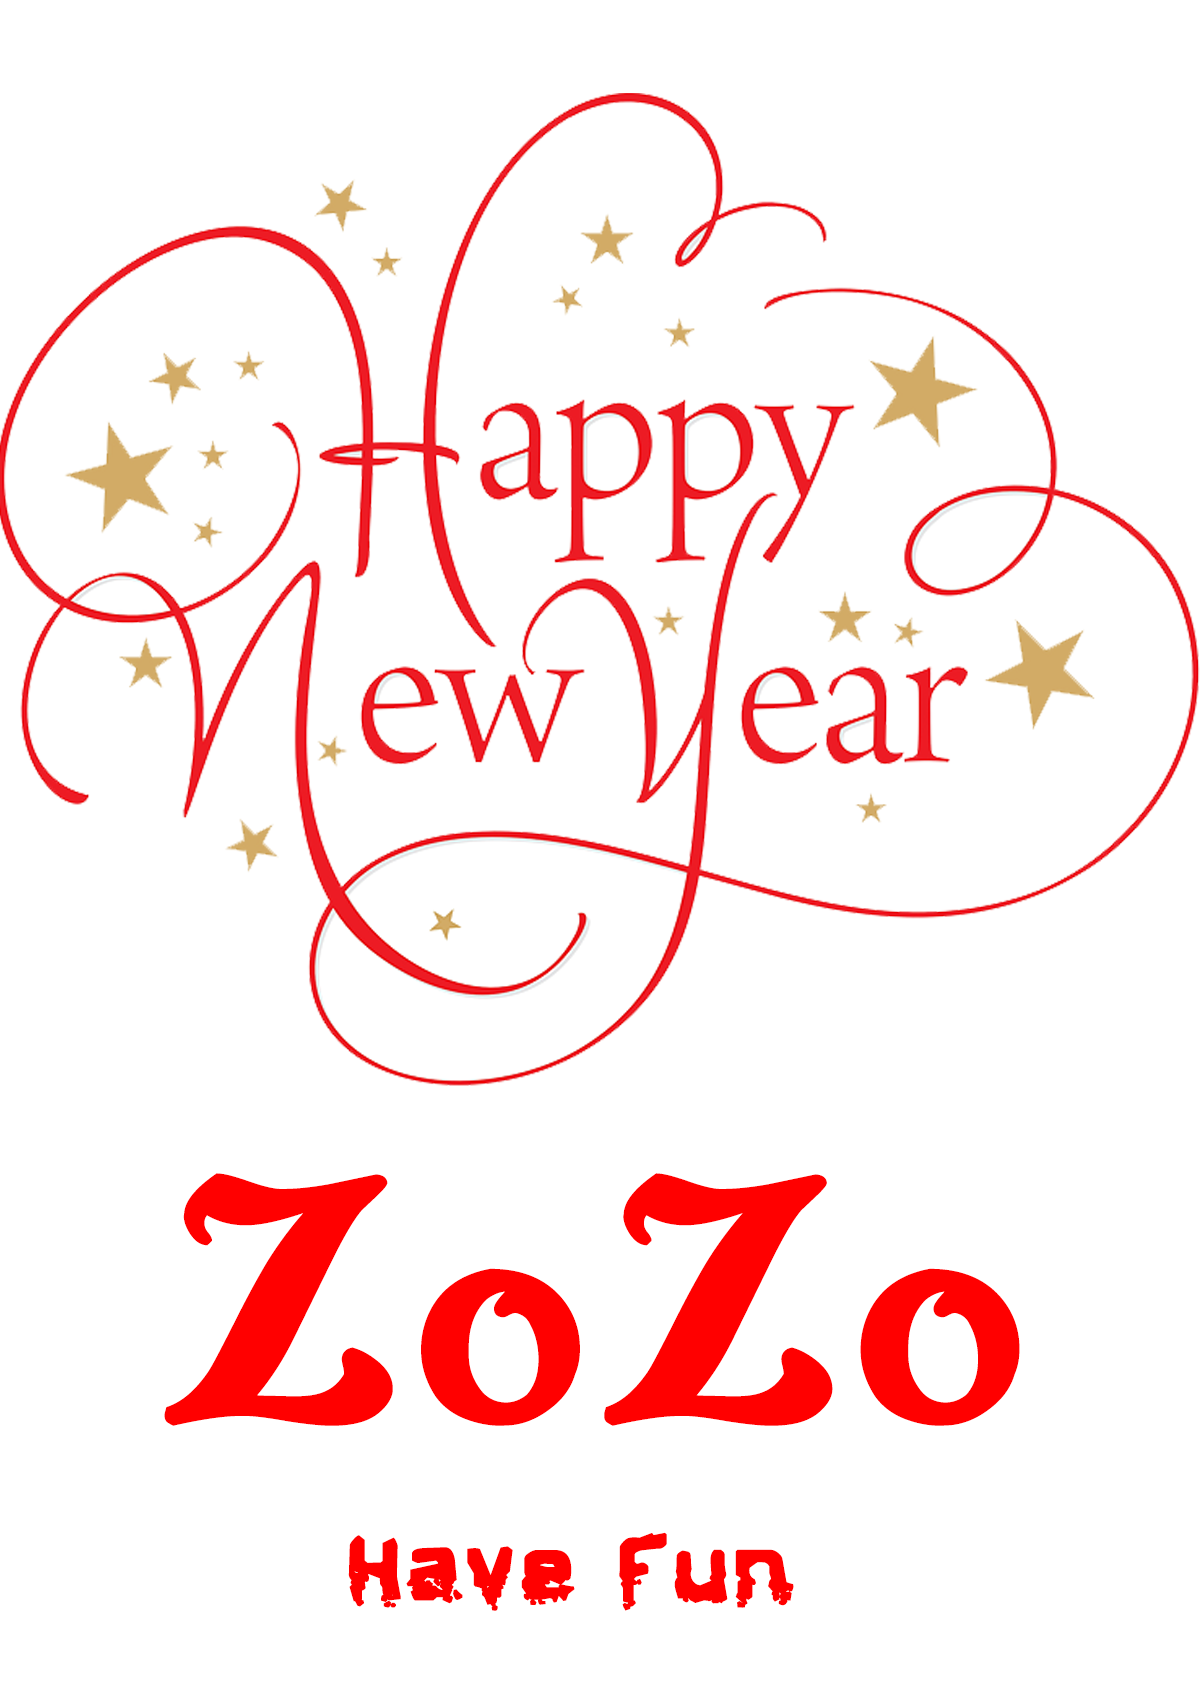 zozo chat happy new year wishes